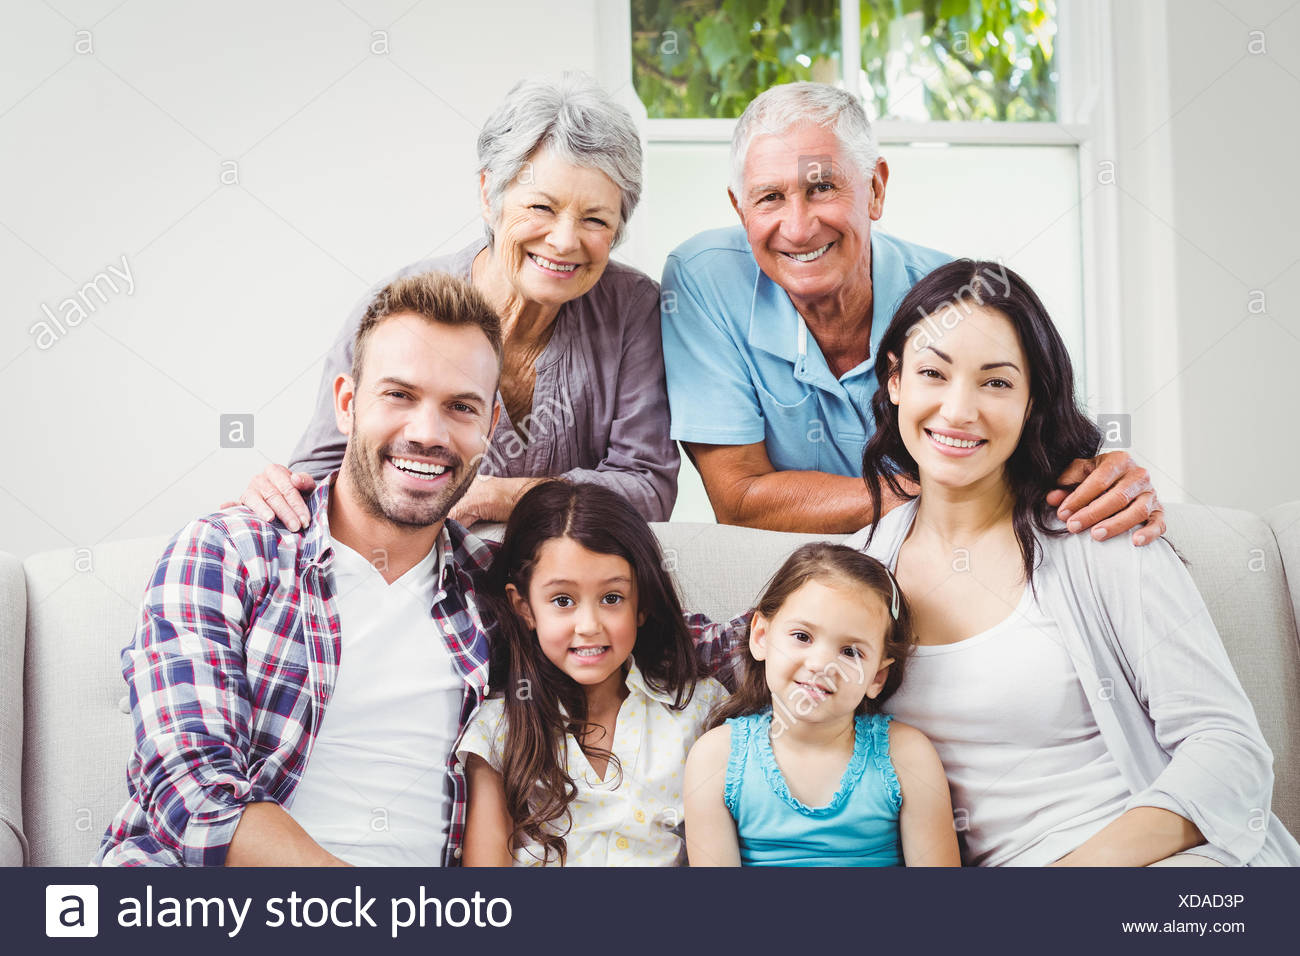 Portrait of happy multi generation family - Stock Image